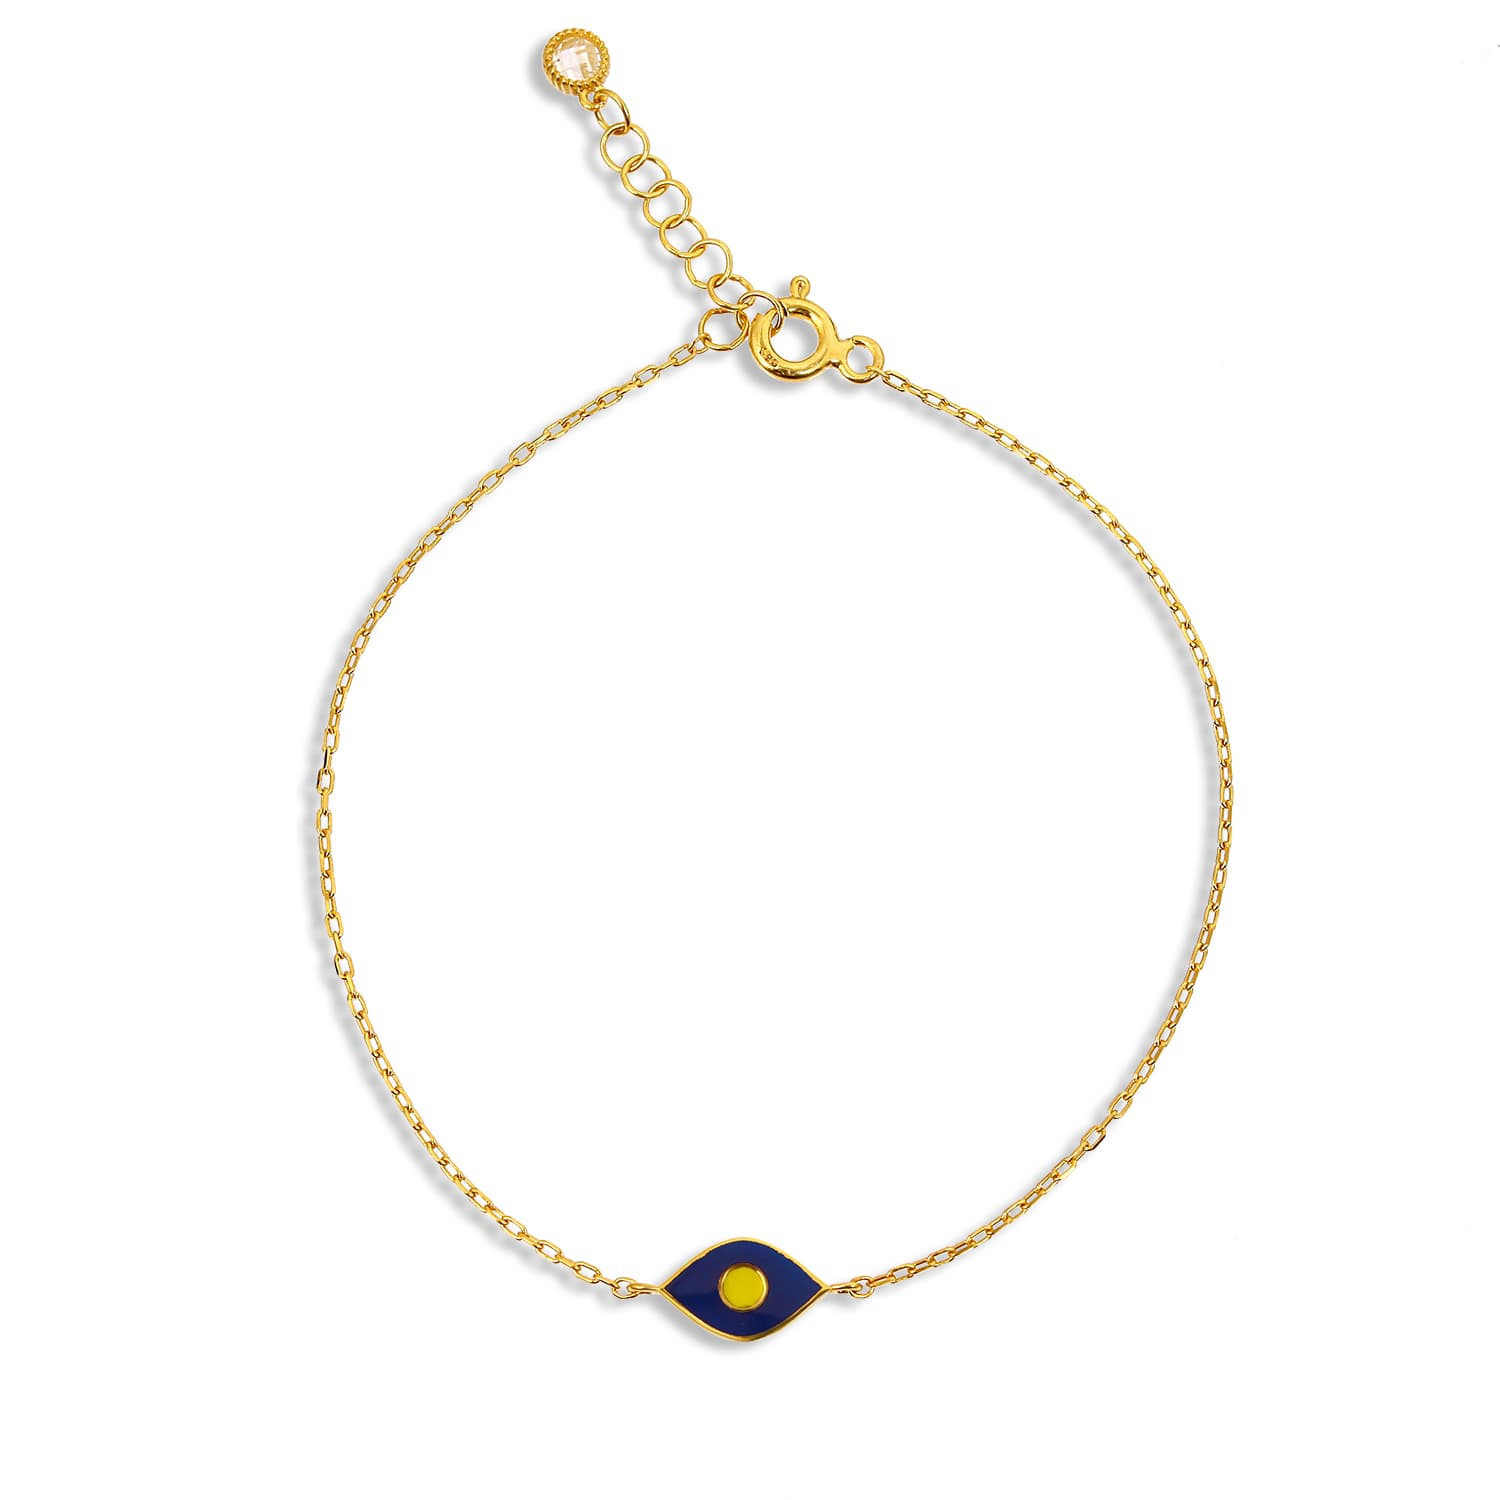 Gold plated enamel bracelet models